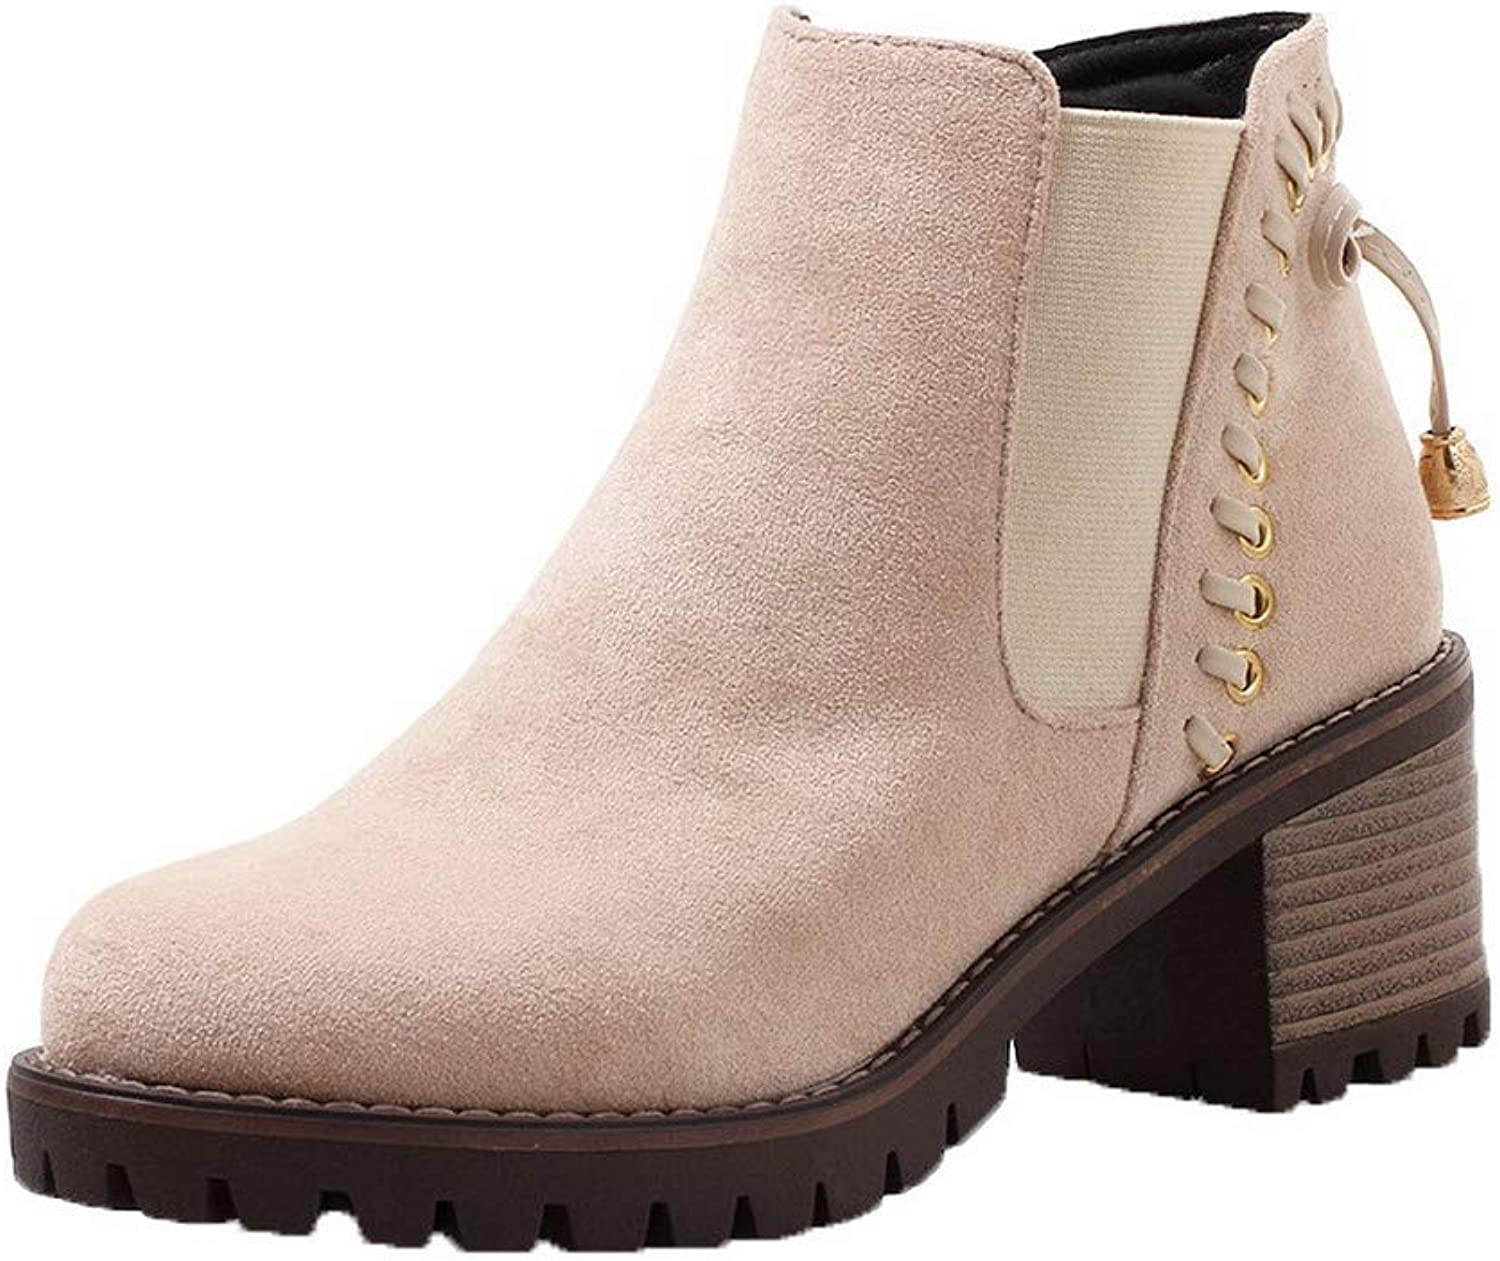 WeiPoot Women's Closed-Toe Low-Top Kitten-Heels Solid Frosted Boots, EGHXH111374